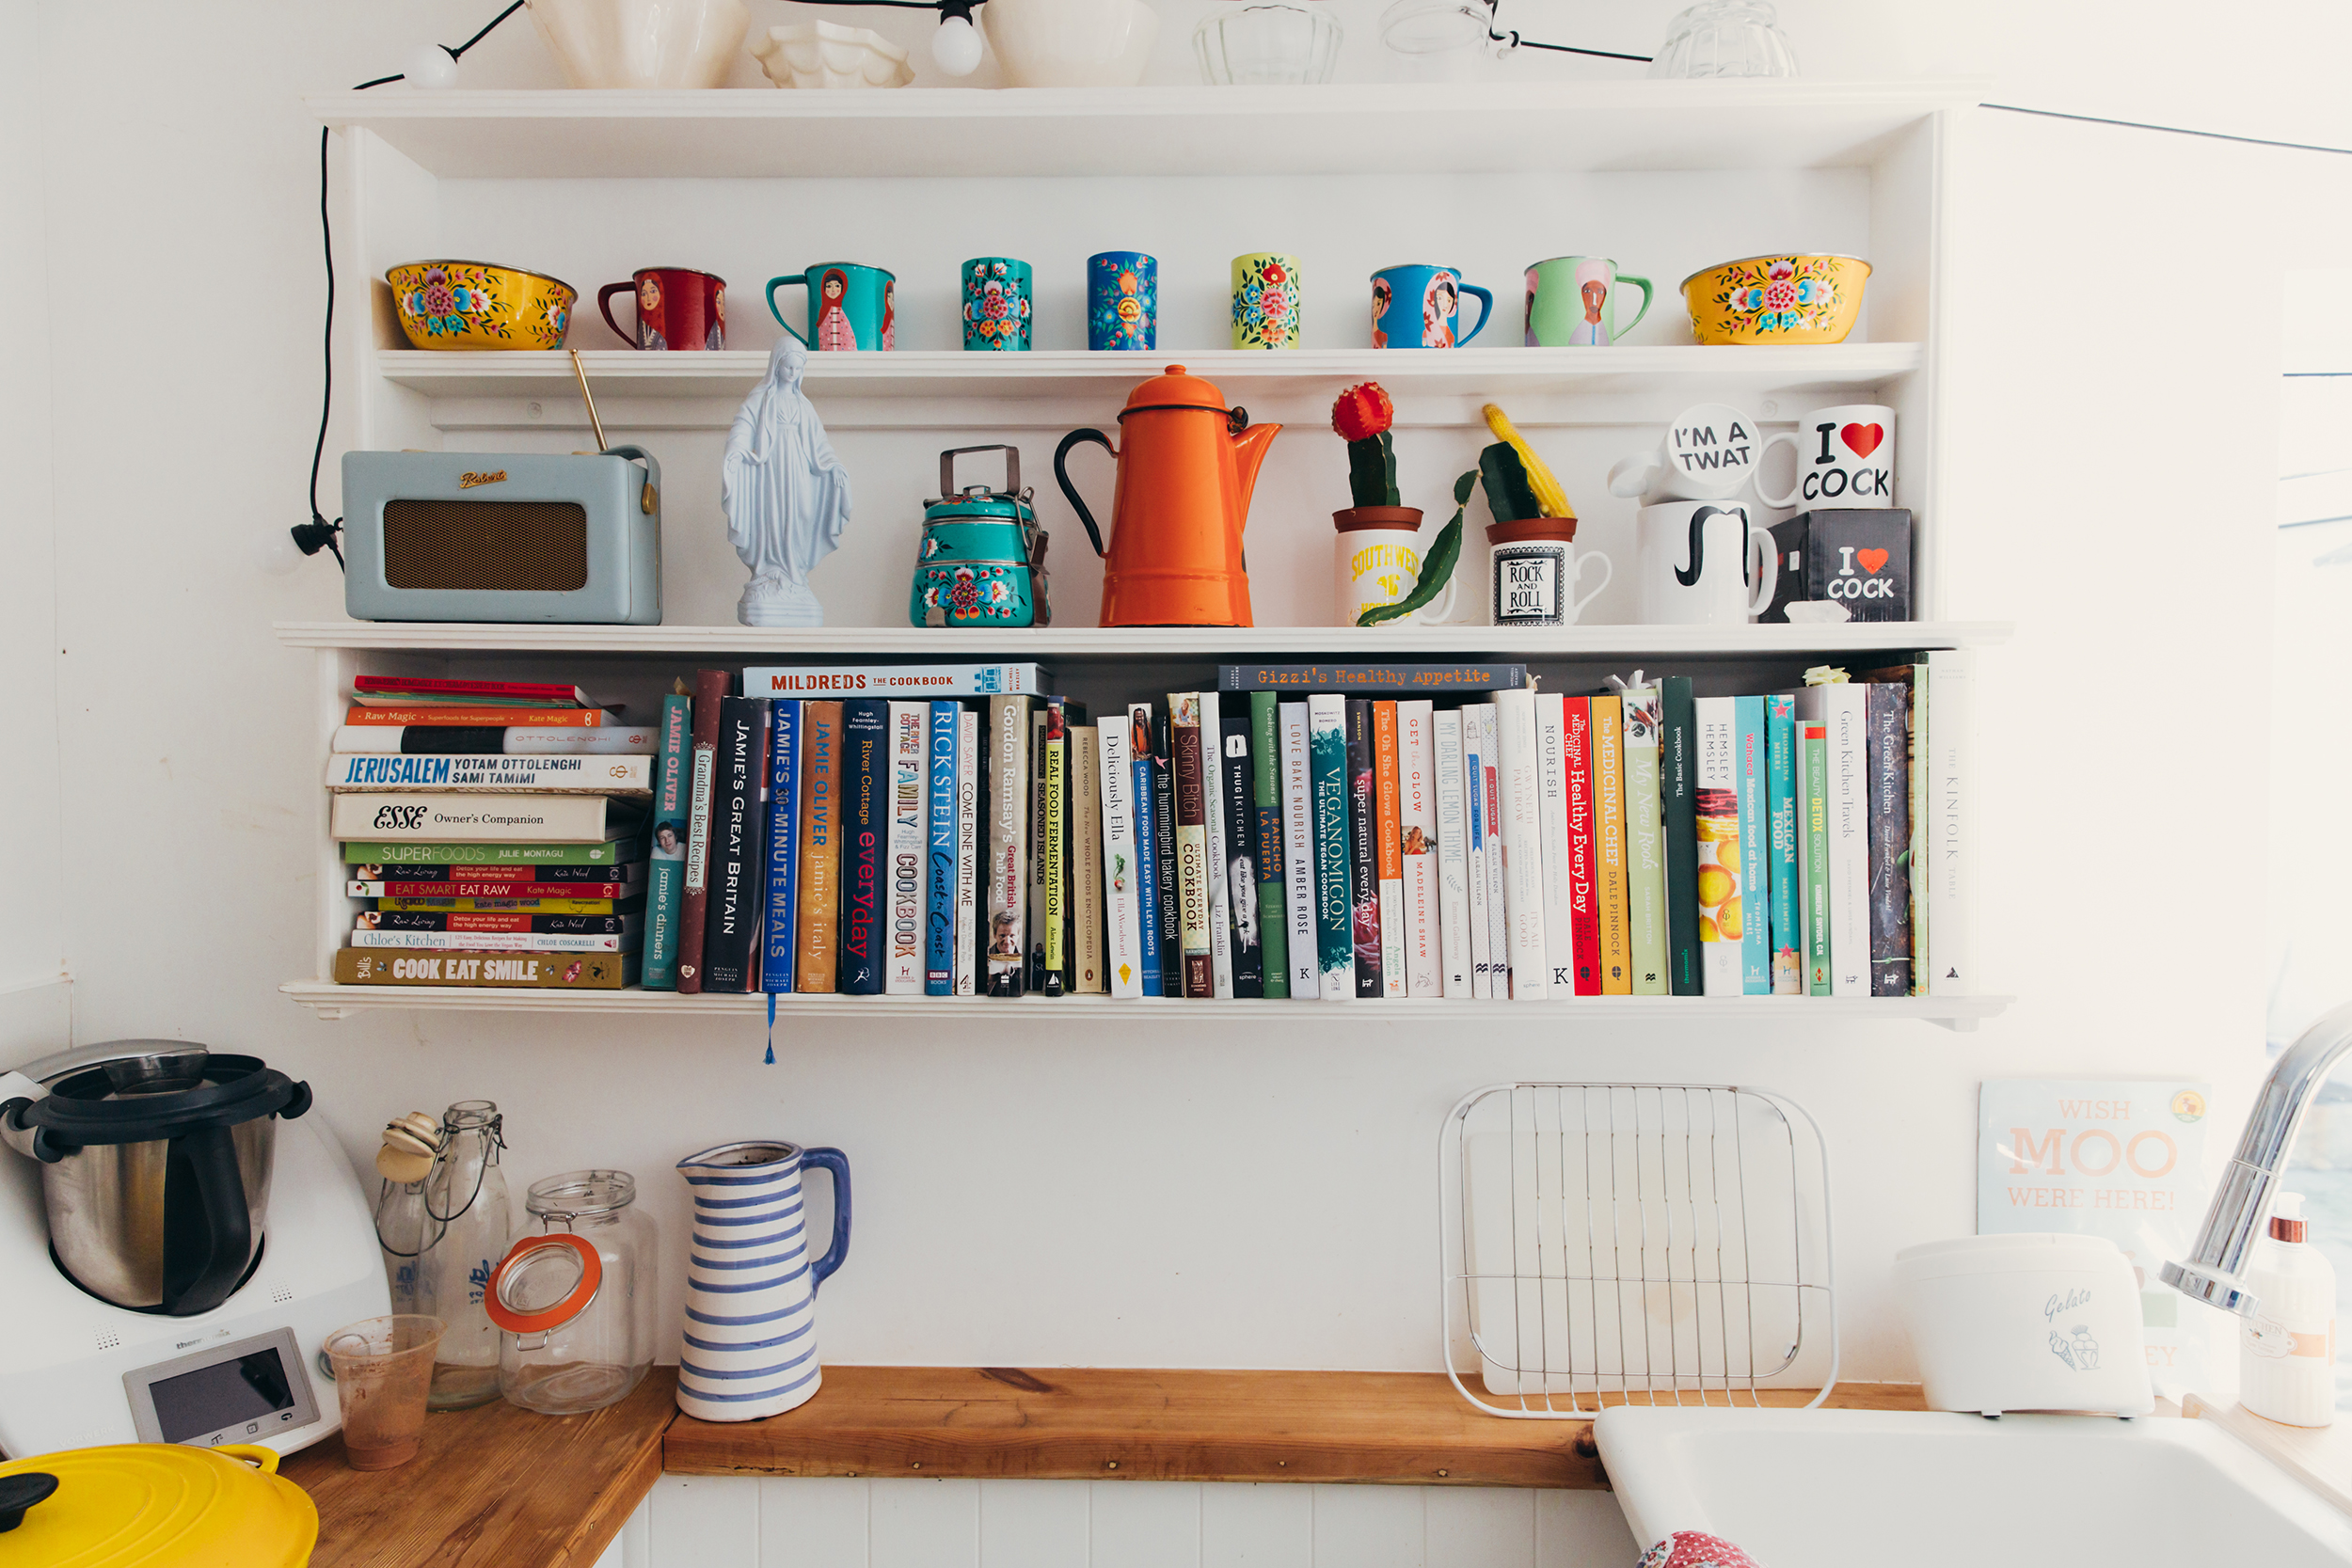 7 Small Kitchen Decor Ideas To Jazz Up Your Space